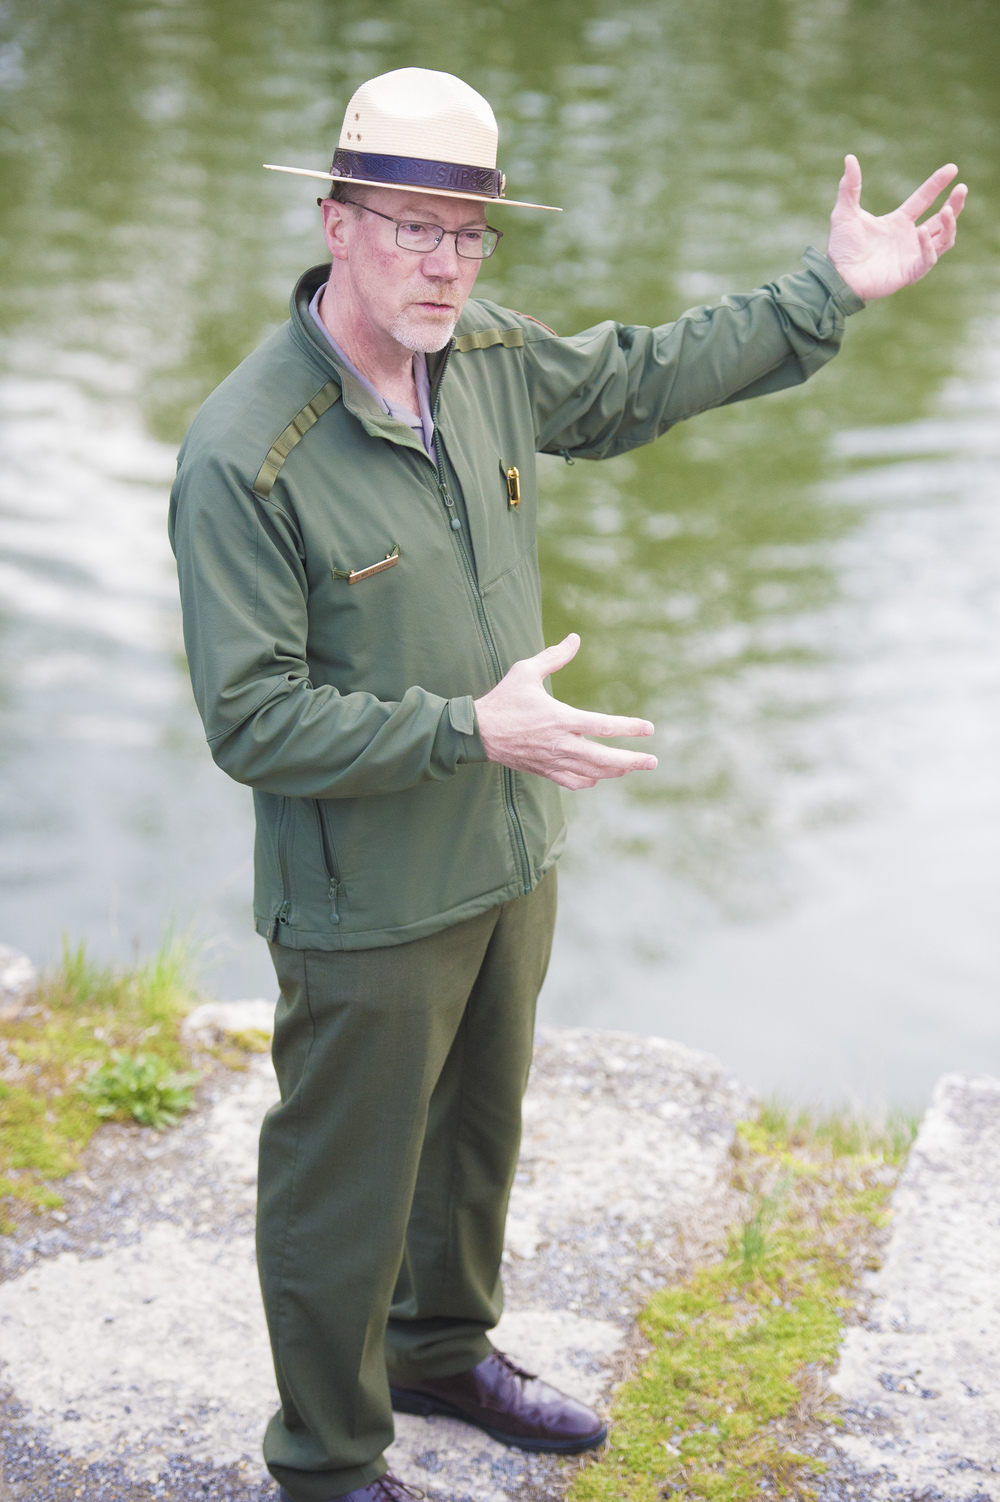 Kevin Brandt Superintendent of C&O Canal